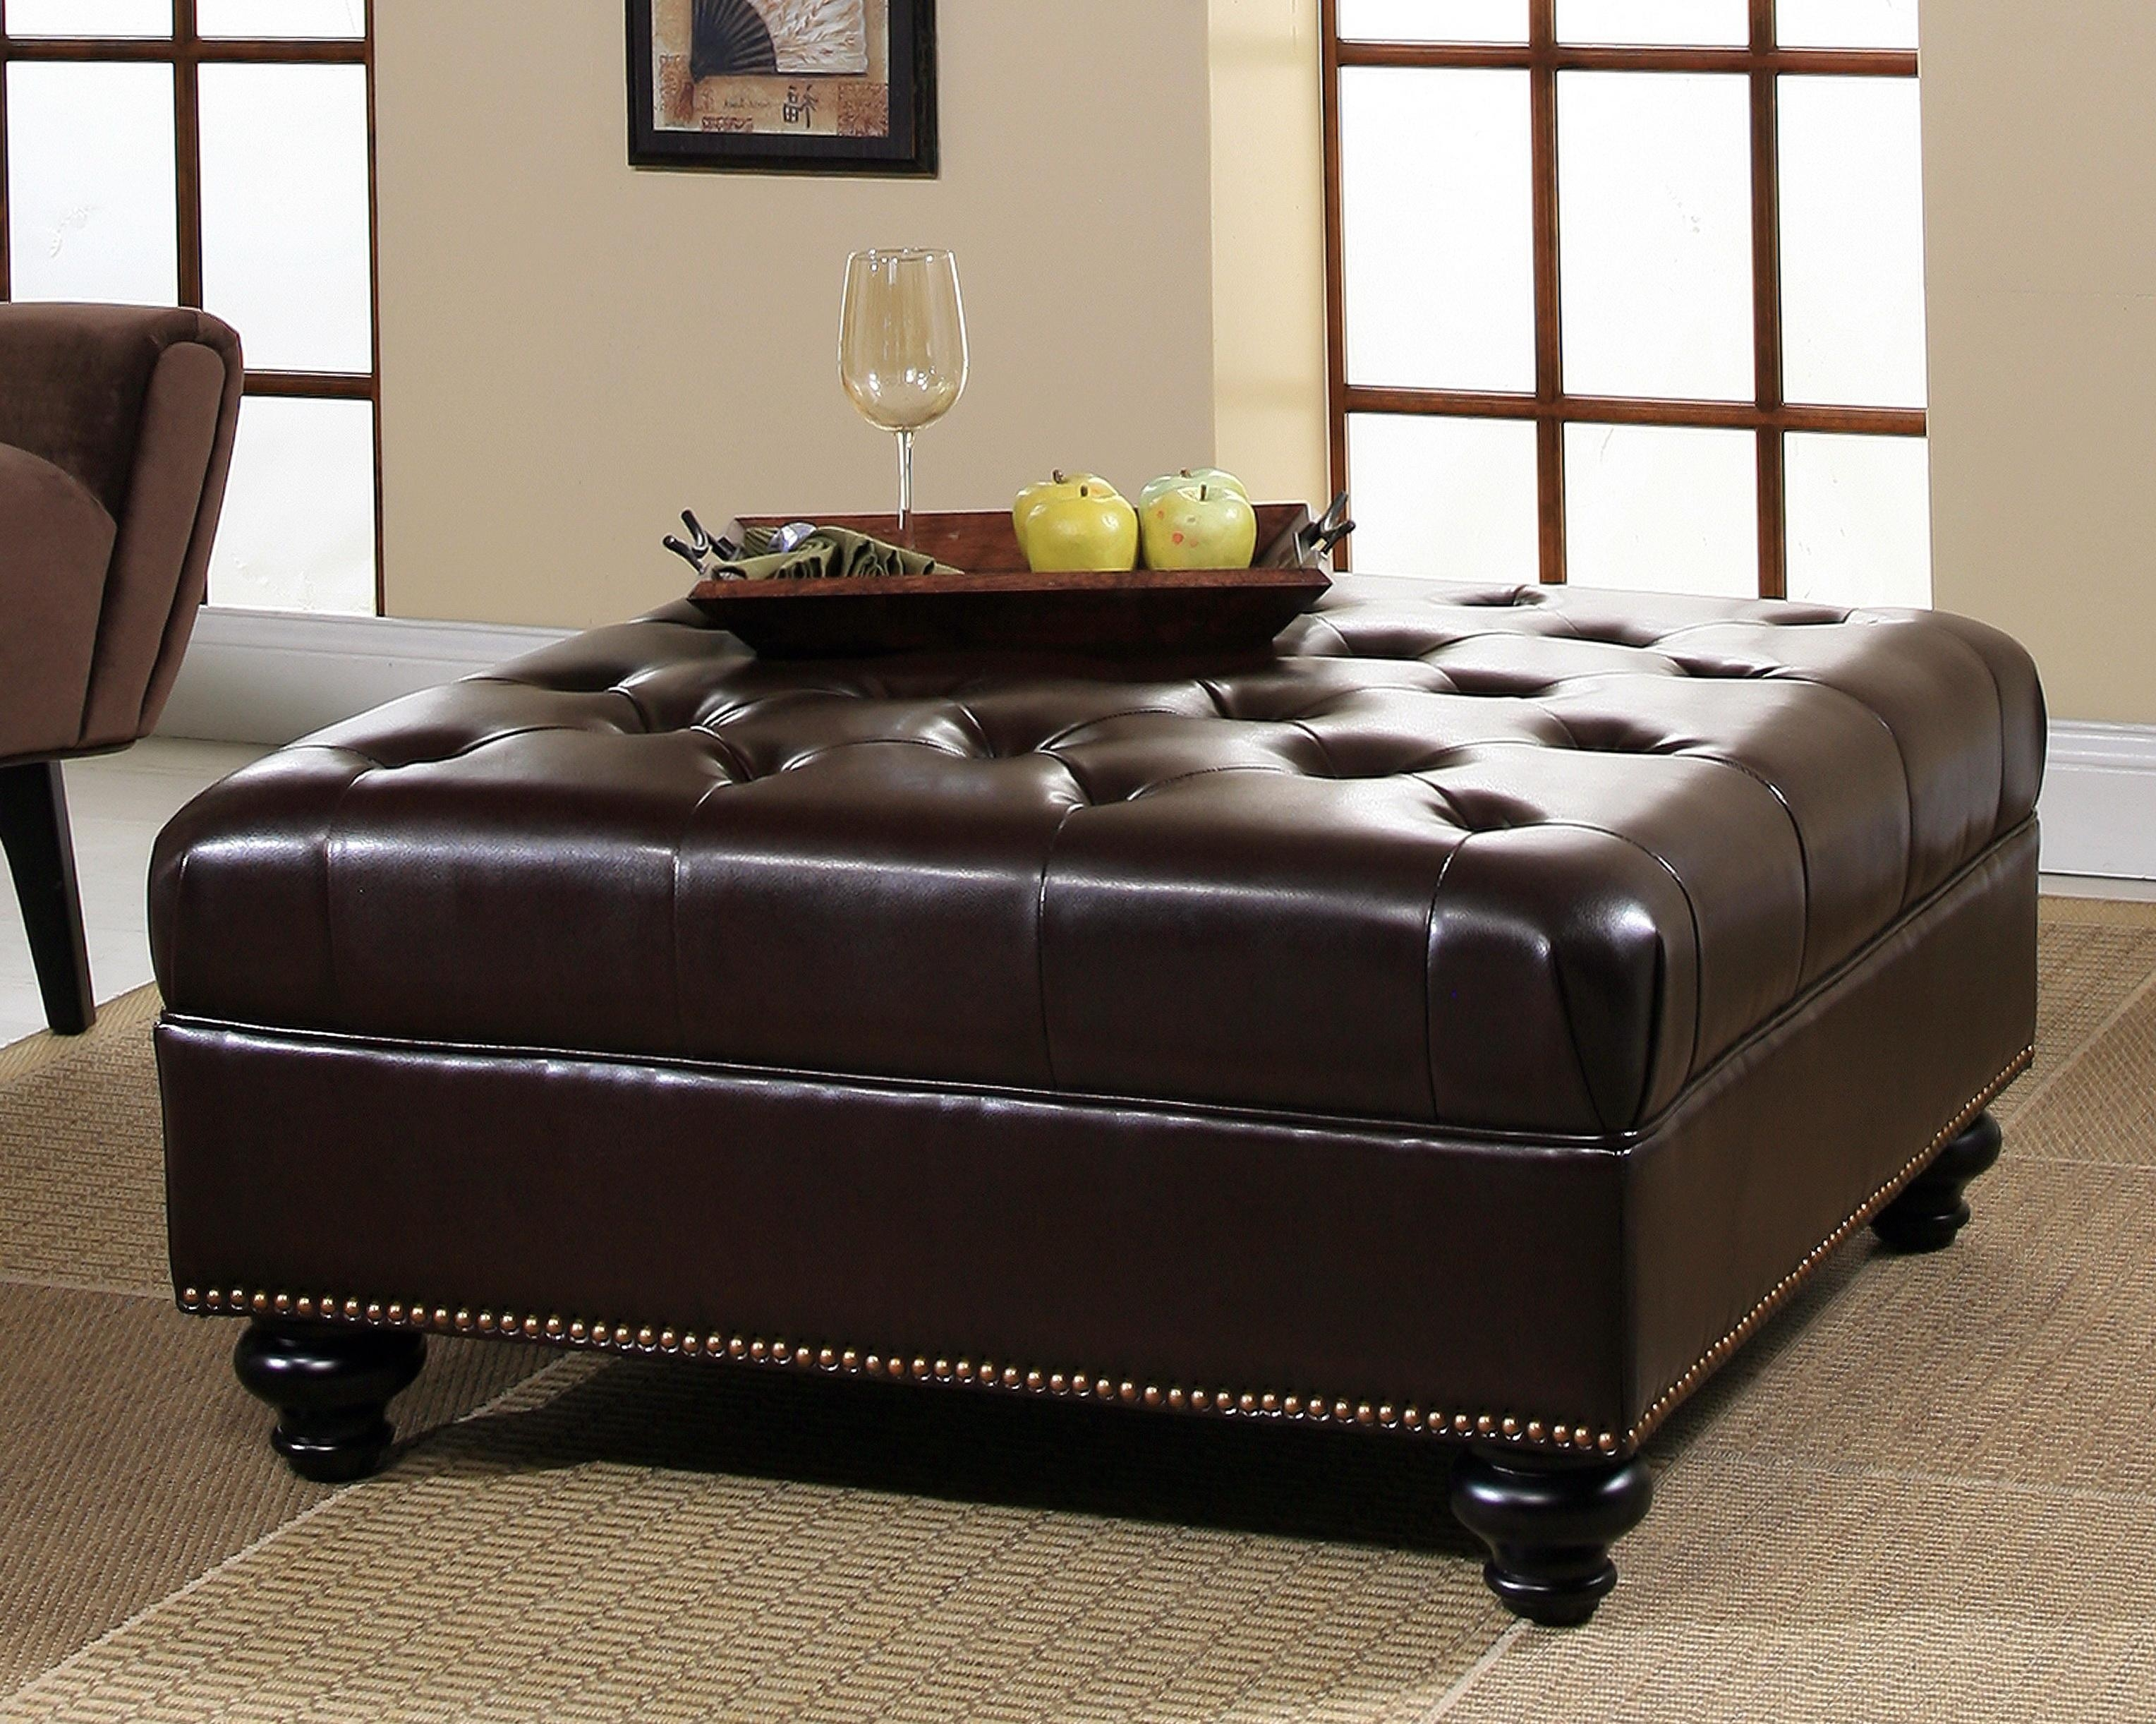 Leather Ottoman Furniture Guide – Leather Sofa Guide With Regard To Leather Storage Sofas (View 13 of 21)